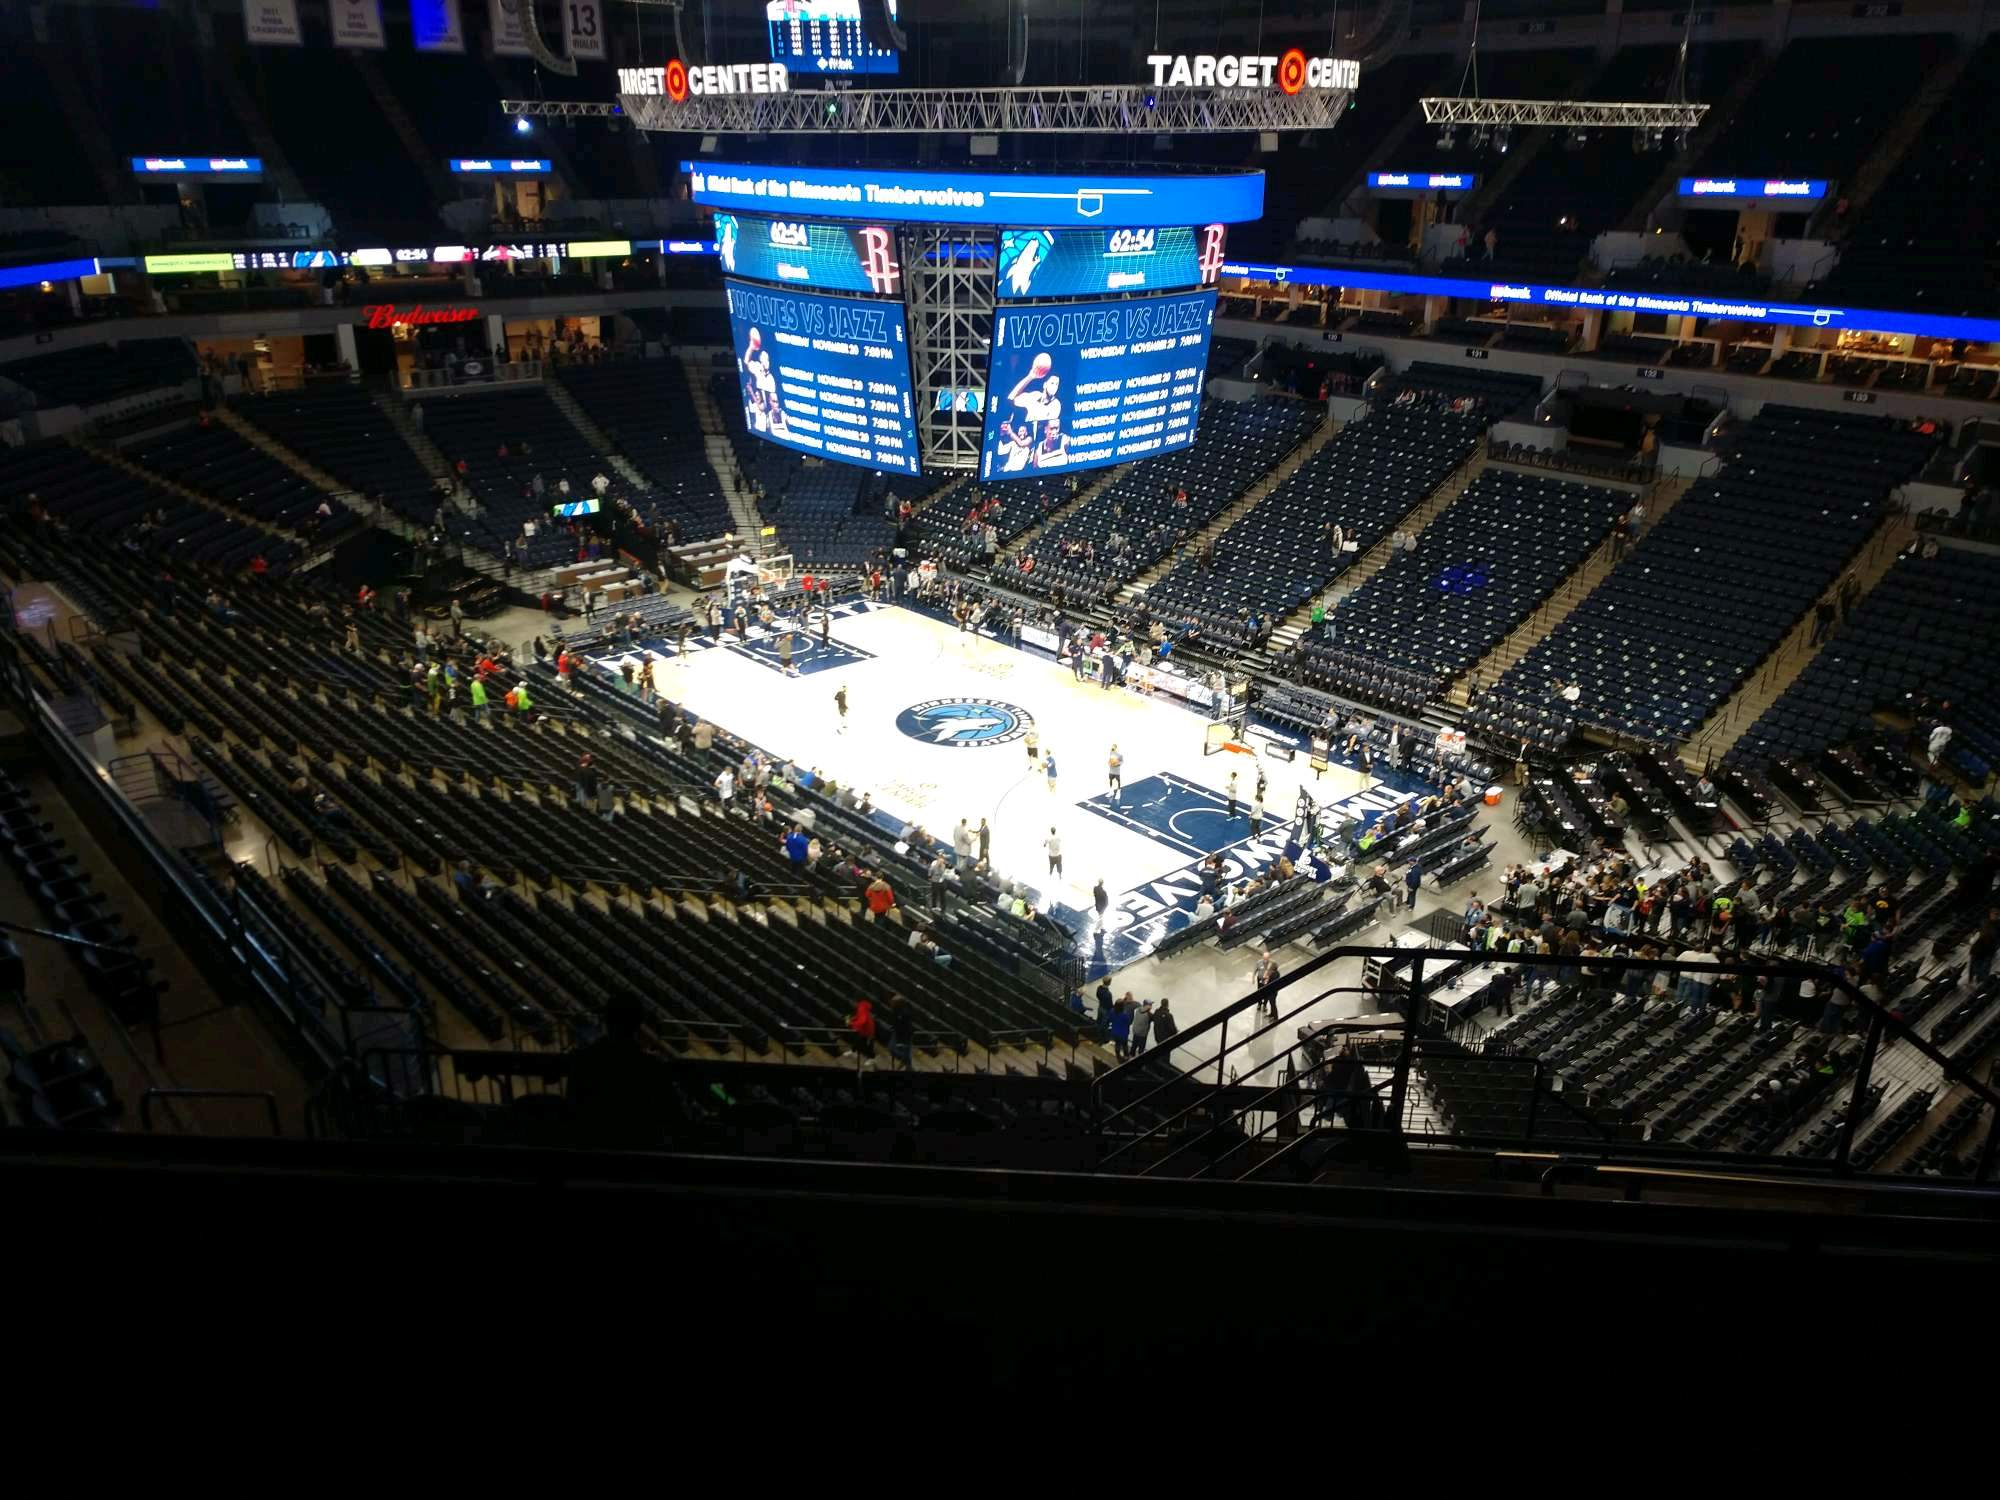 Target Center Section 206 Row L Seat 4